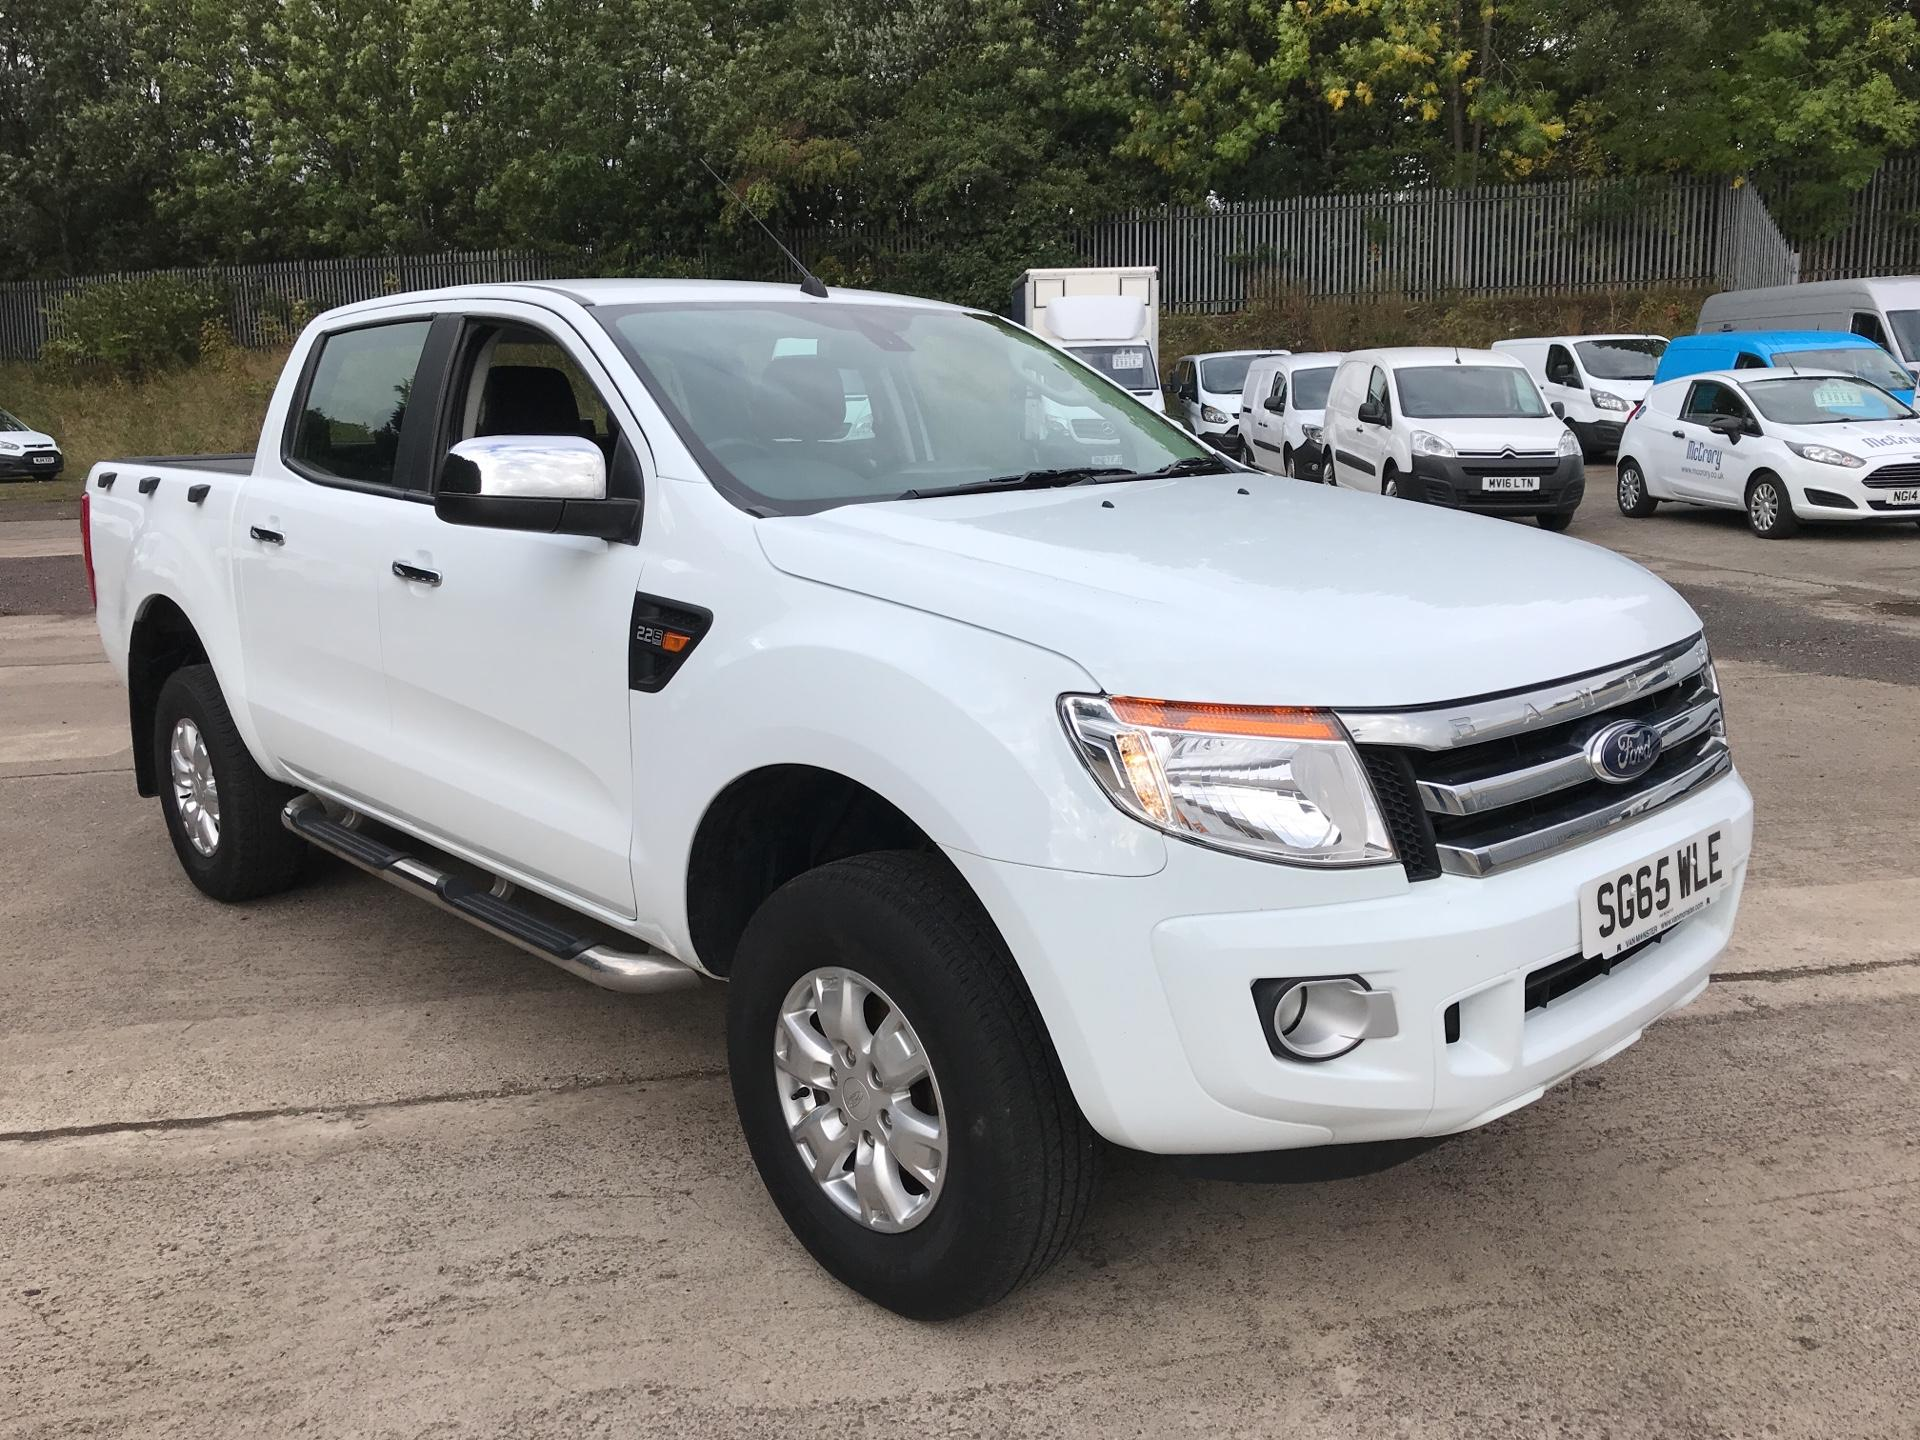 2015 Ford Ranger DOUBLE CAB PICK UP XLT 2.2 TDCI 150PS 4WD EURO 5 (SG65WLE)